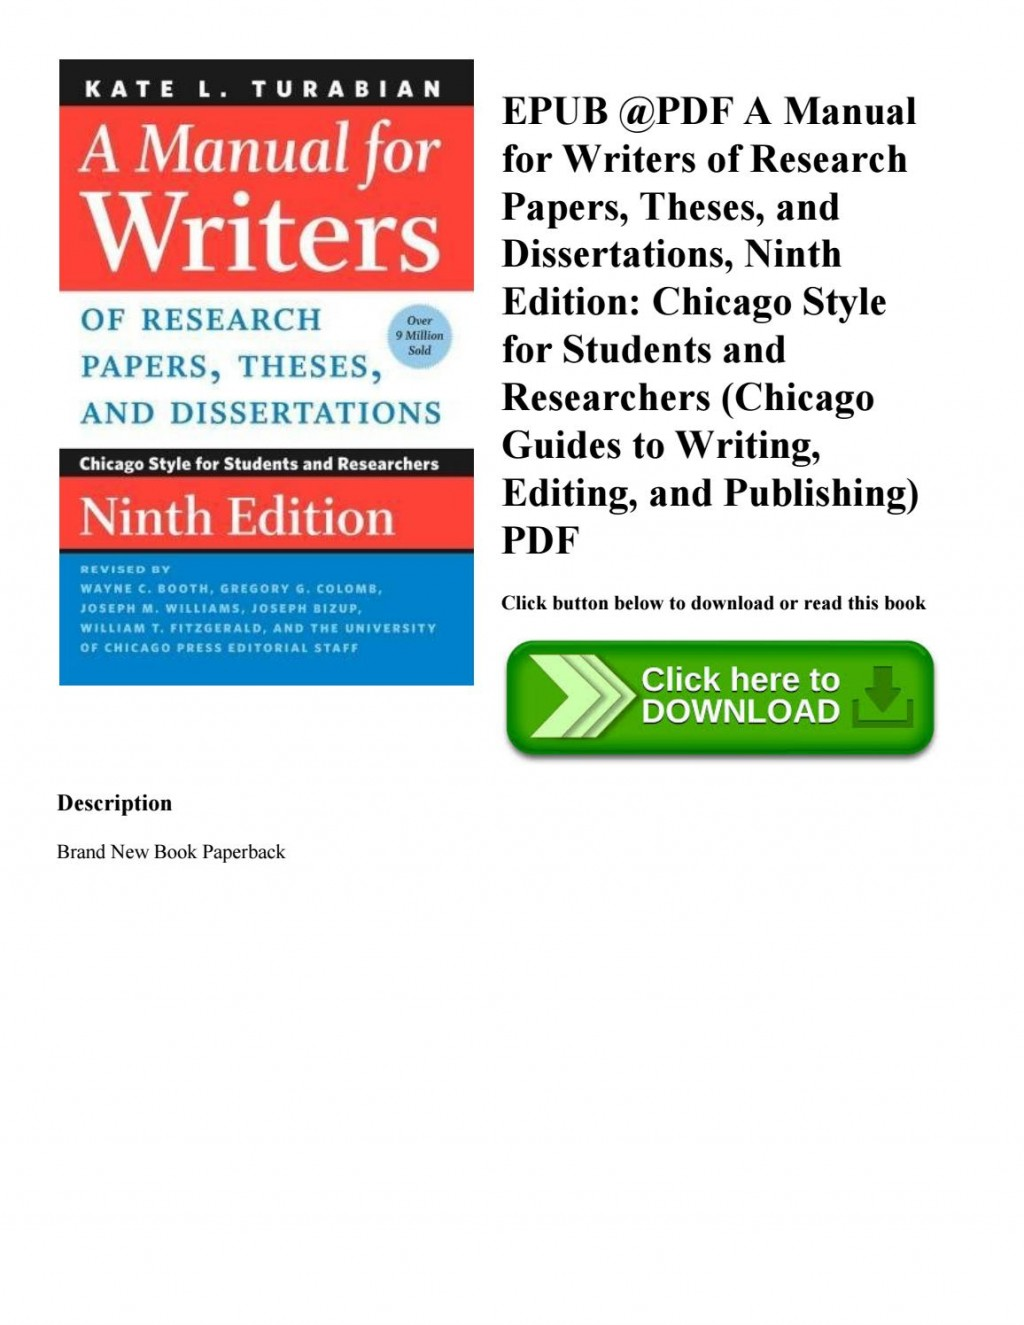 013 Page 1 Manual For Writers Of Researchs Theses And Dissertations 9th Edition Pdf Wonderful A Research Papers Large